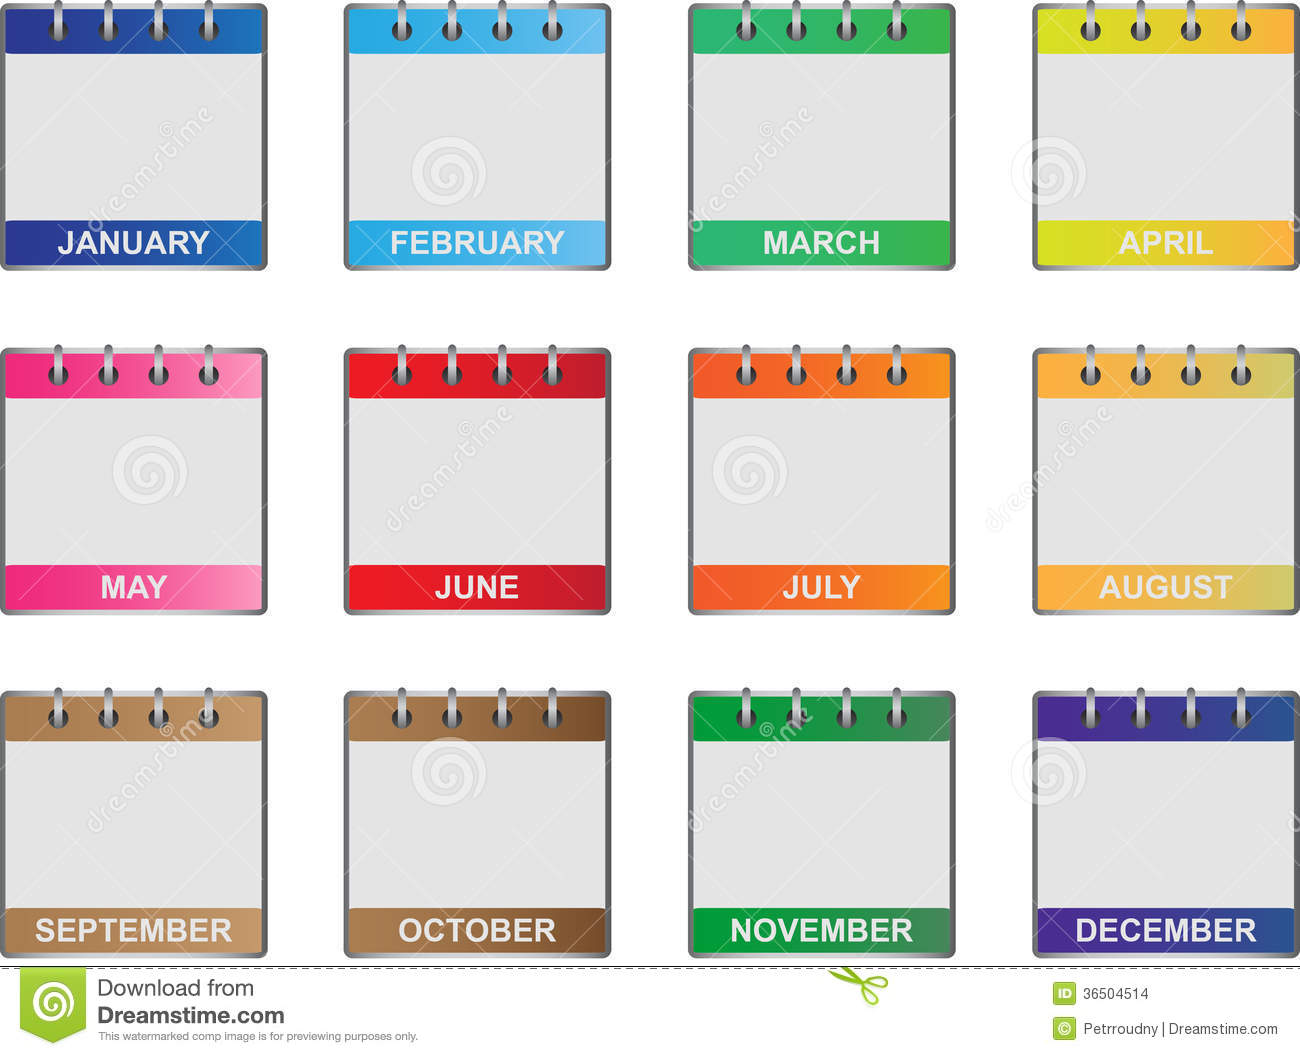 Calendar month clipart banner free download Calendar Months Clipart - Clipart Kid banner free download